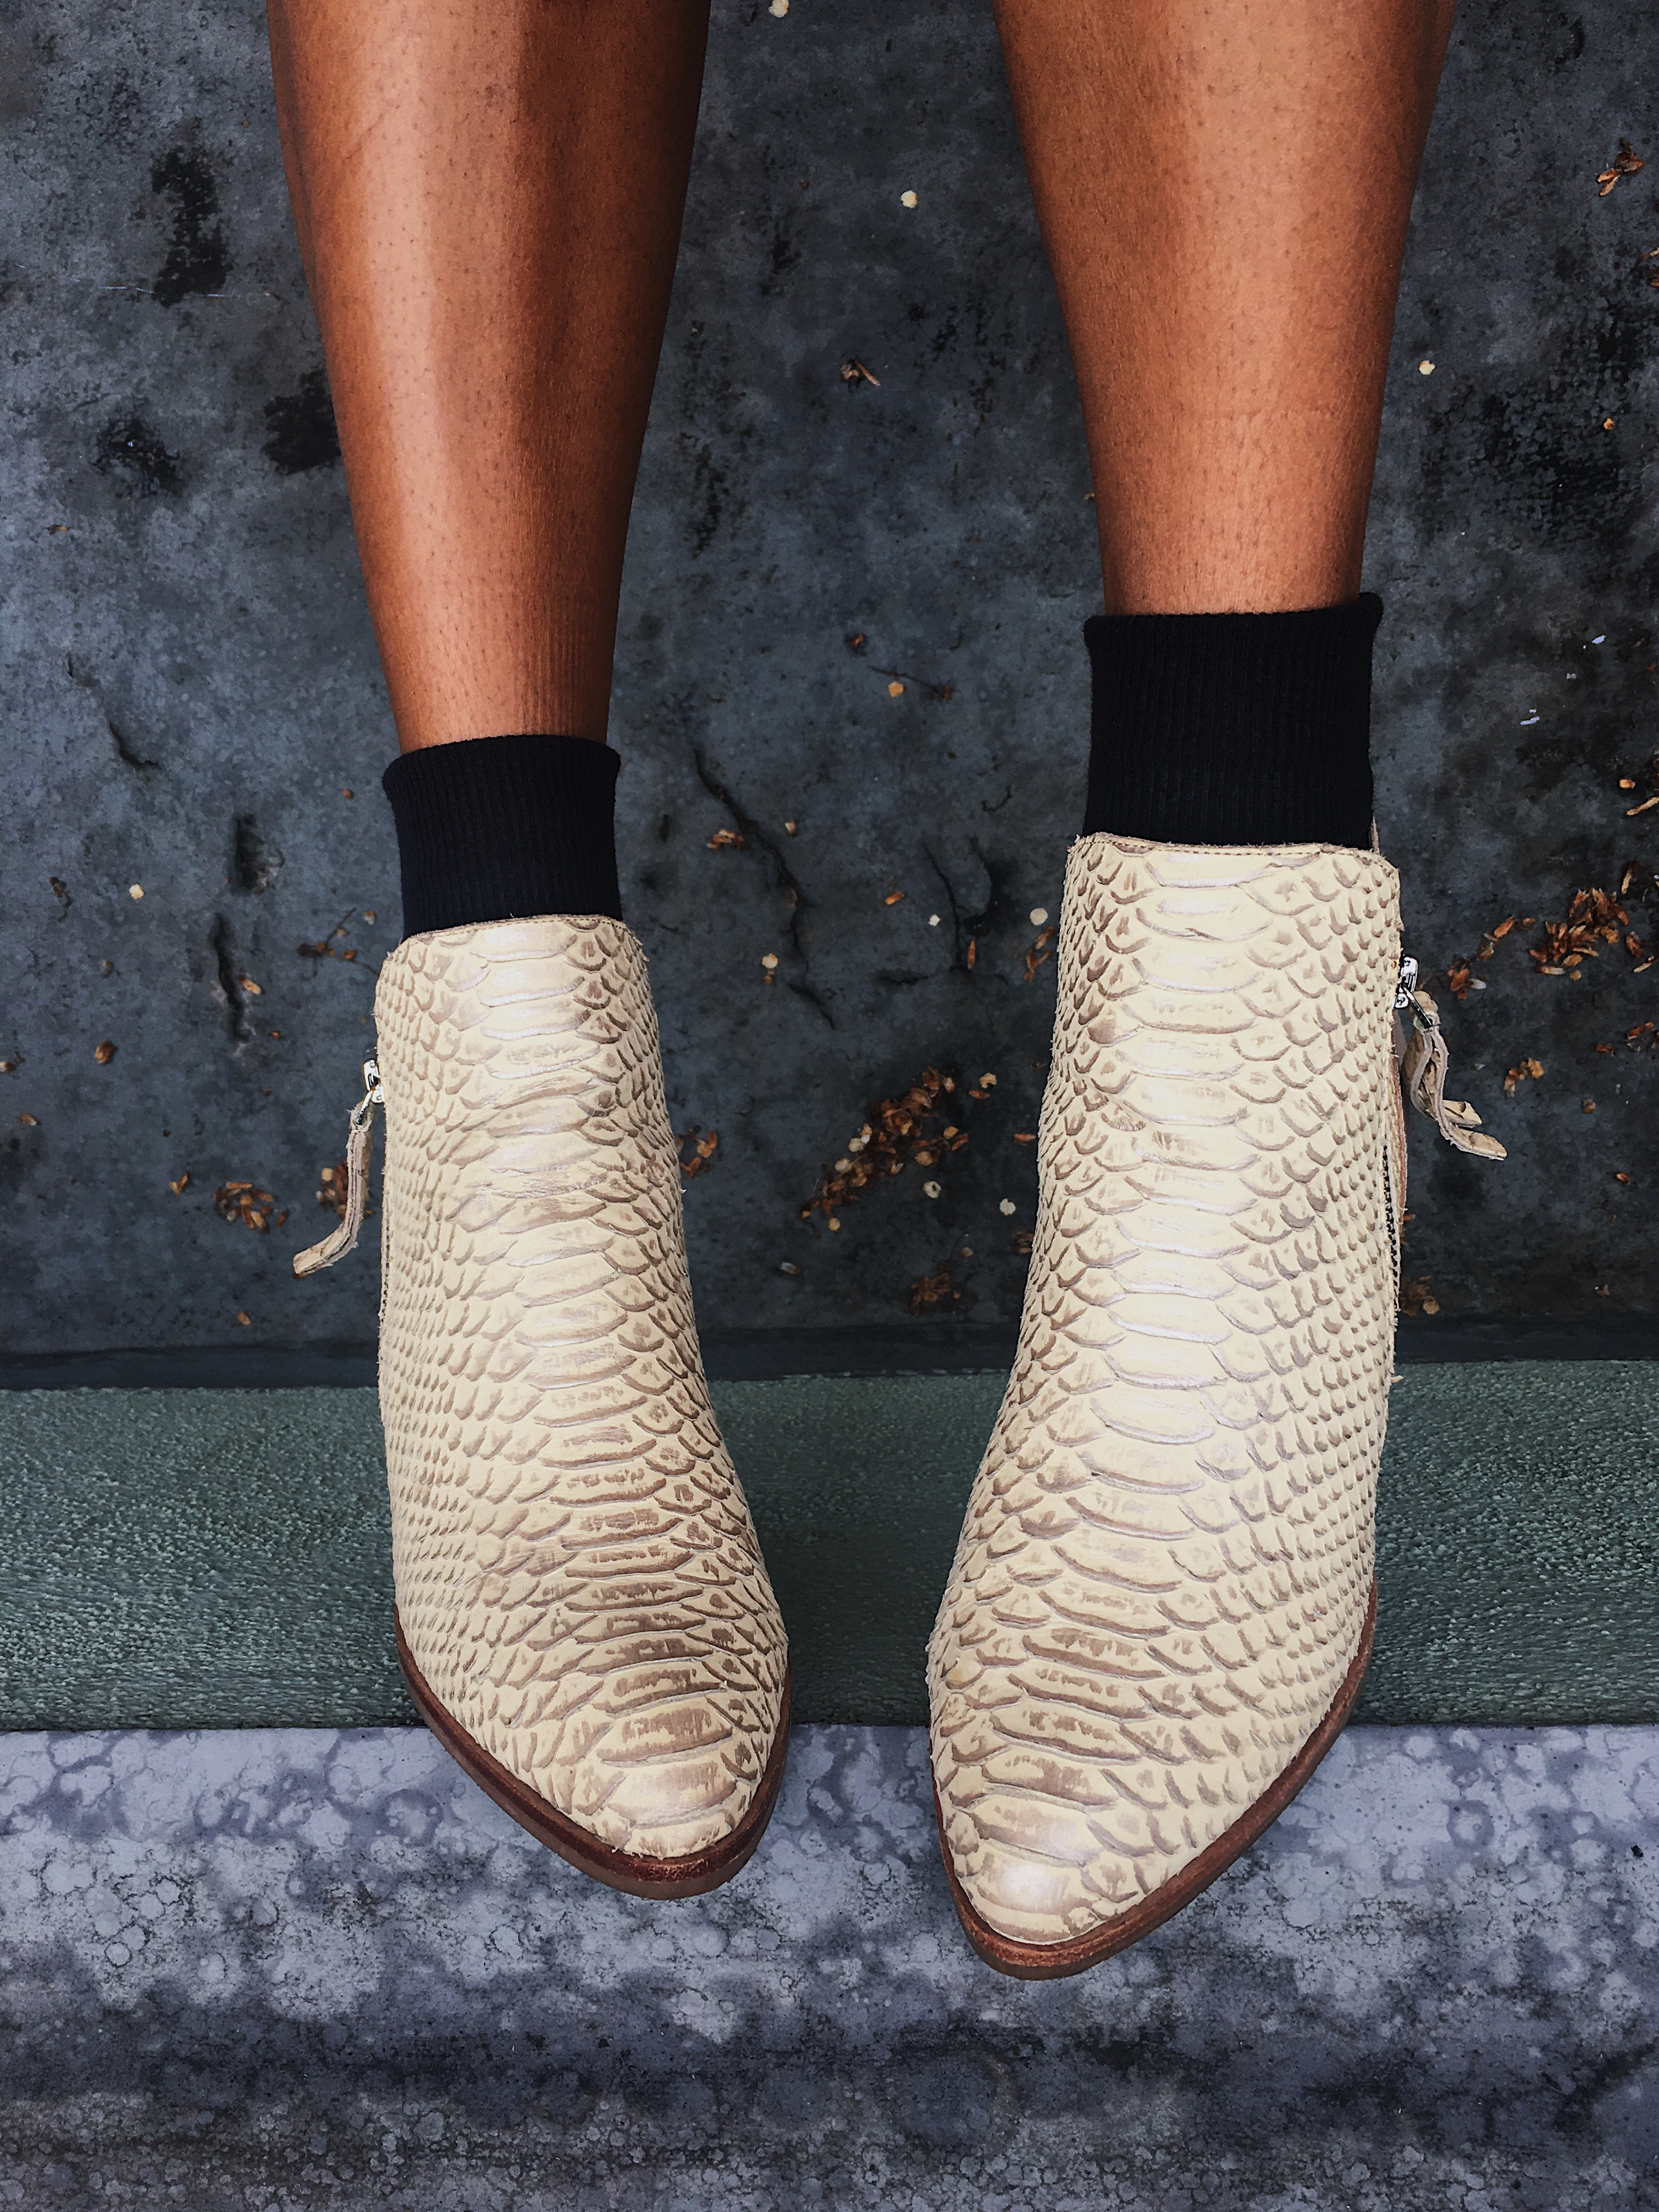 snake print booties-snake print shoes-wear who you are-liveclothesminded